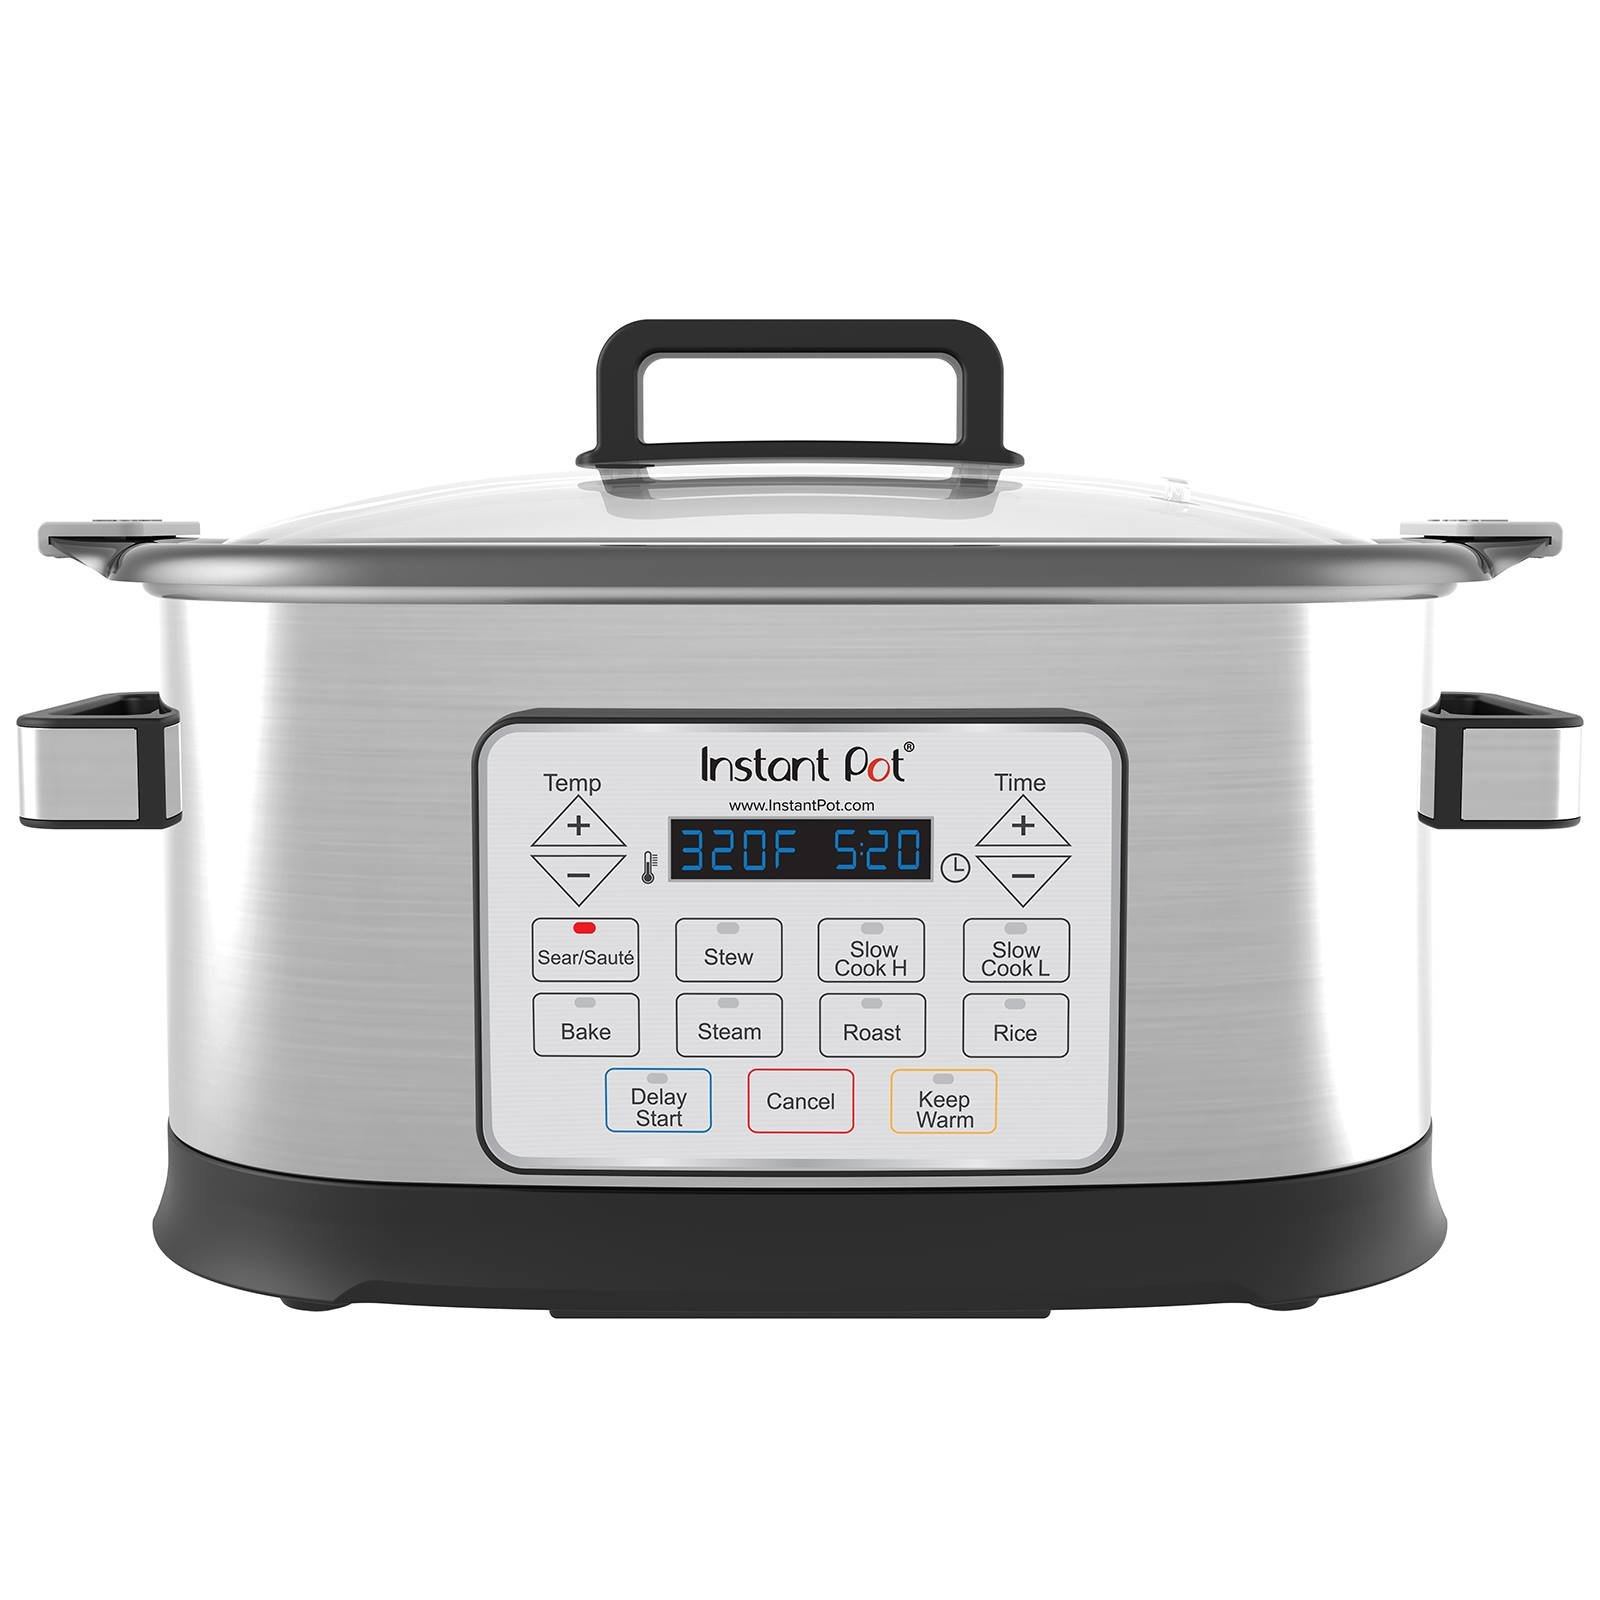 Some Instant Pot models overheating